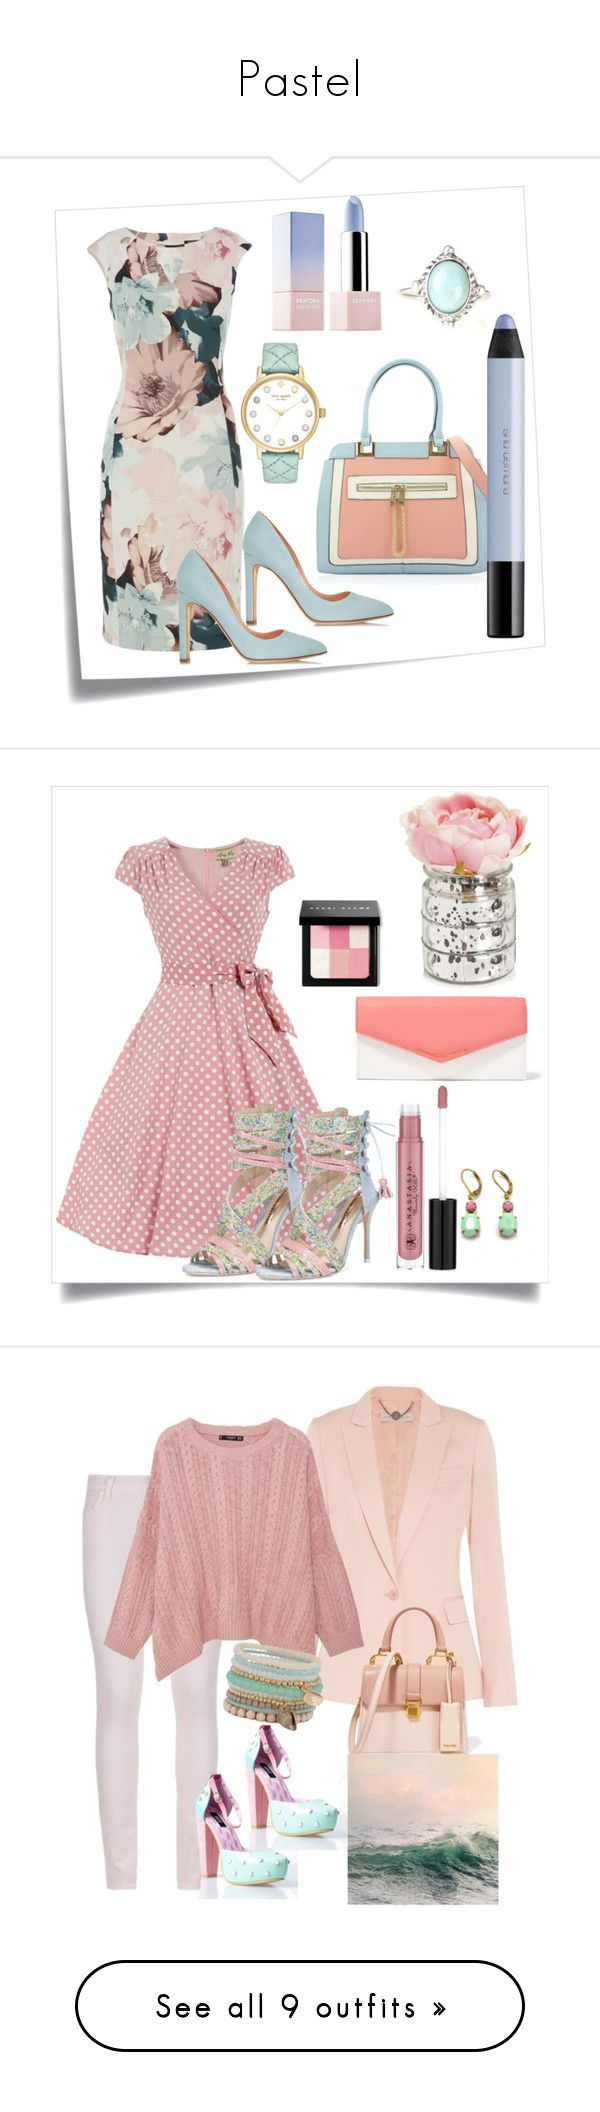 """""""Pastel"""" by capm ❤ liked on Polyvore featuring Post-It, Rupert Sanderson, Kate Spade, shu uemura, Sephora Collection, Sophia Webster, Fendi, Zara Taylor, Bobbi Brown Cosmetics and Anastasia Beverly Hills"""